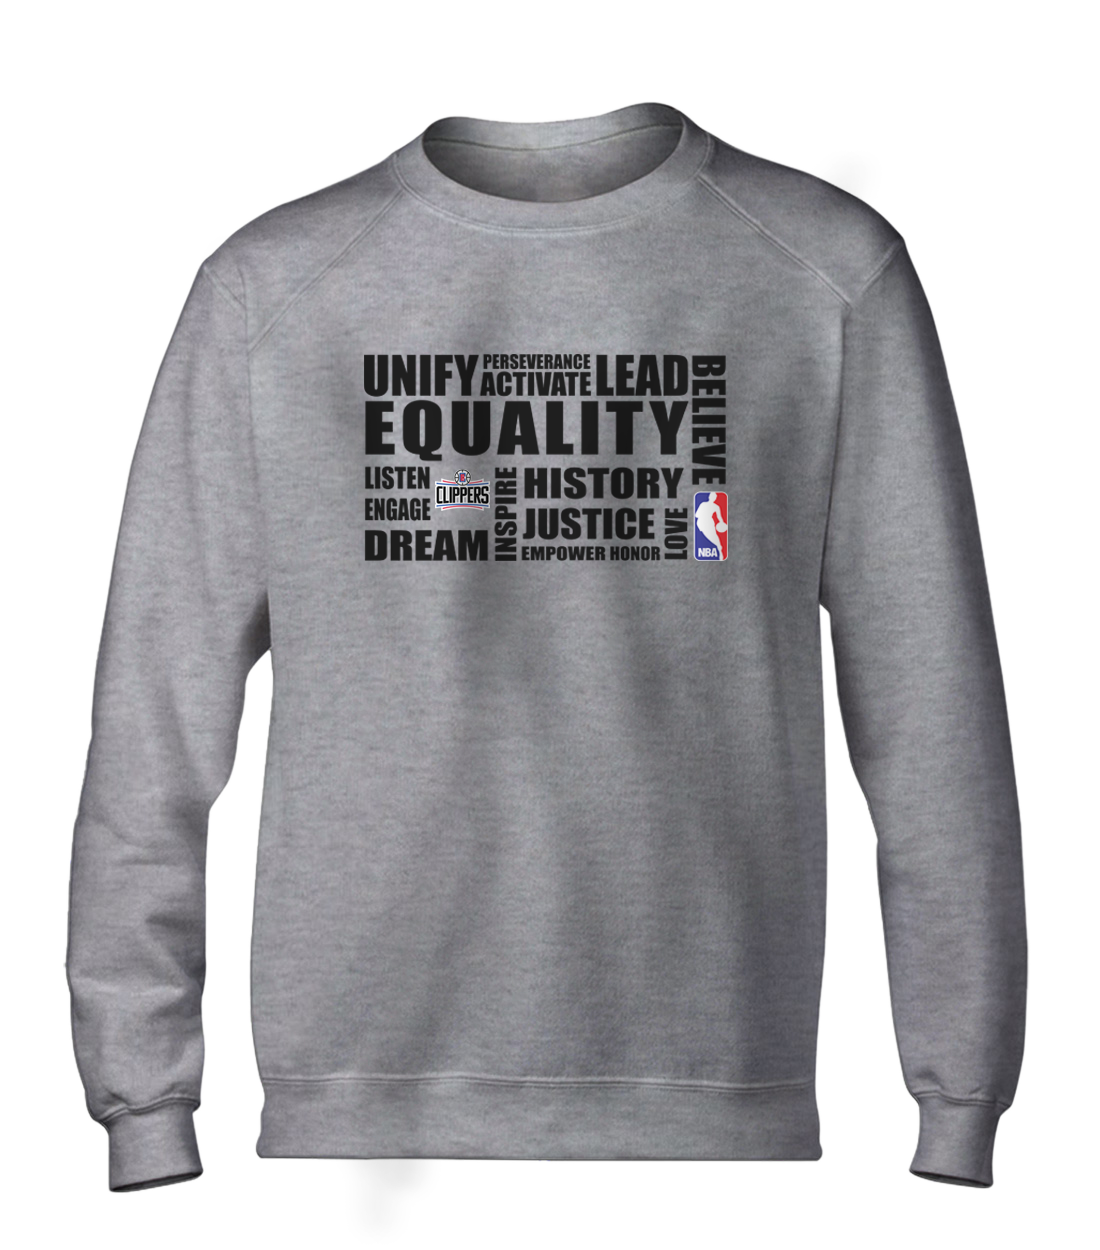 EQUALITY  L.A. Clippers  Basic (BSC-GRY-NP-292-NBA-LAC.syh)